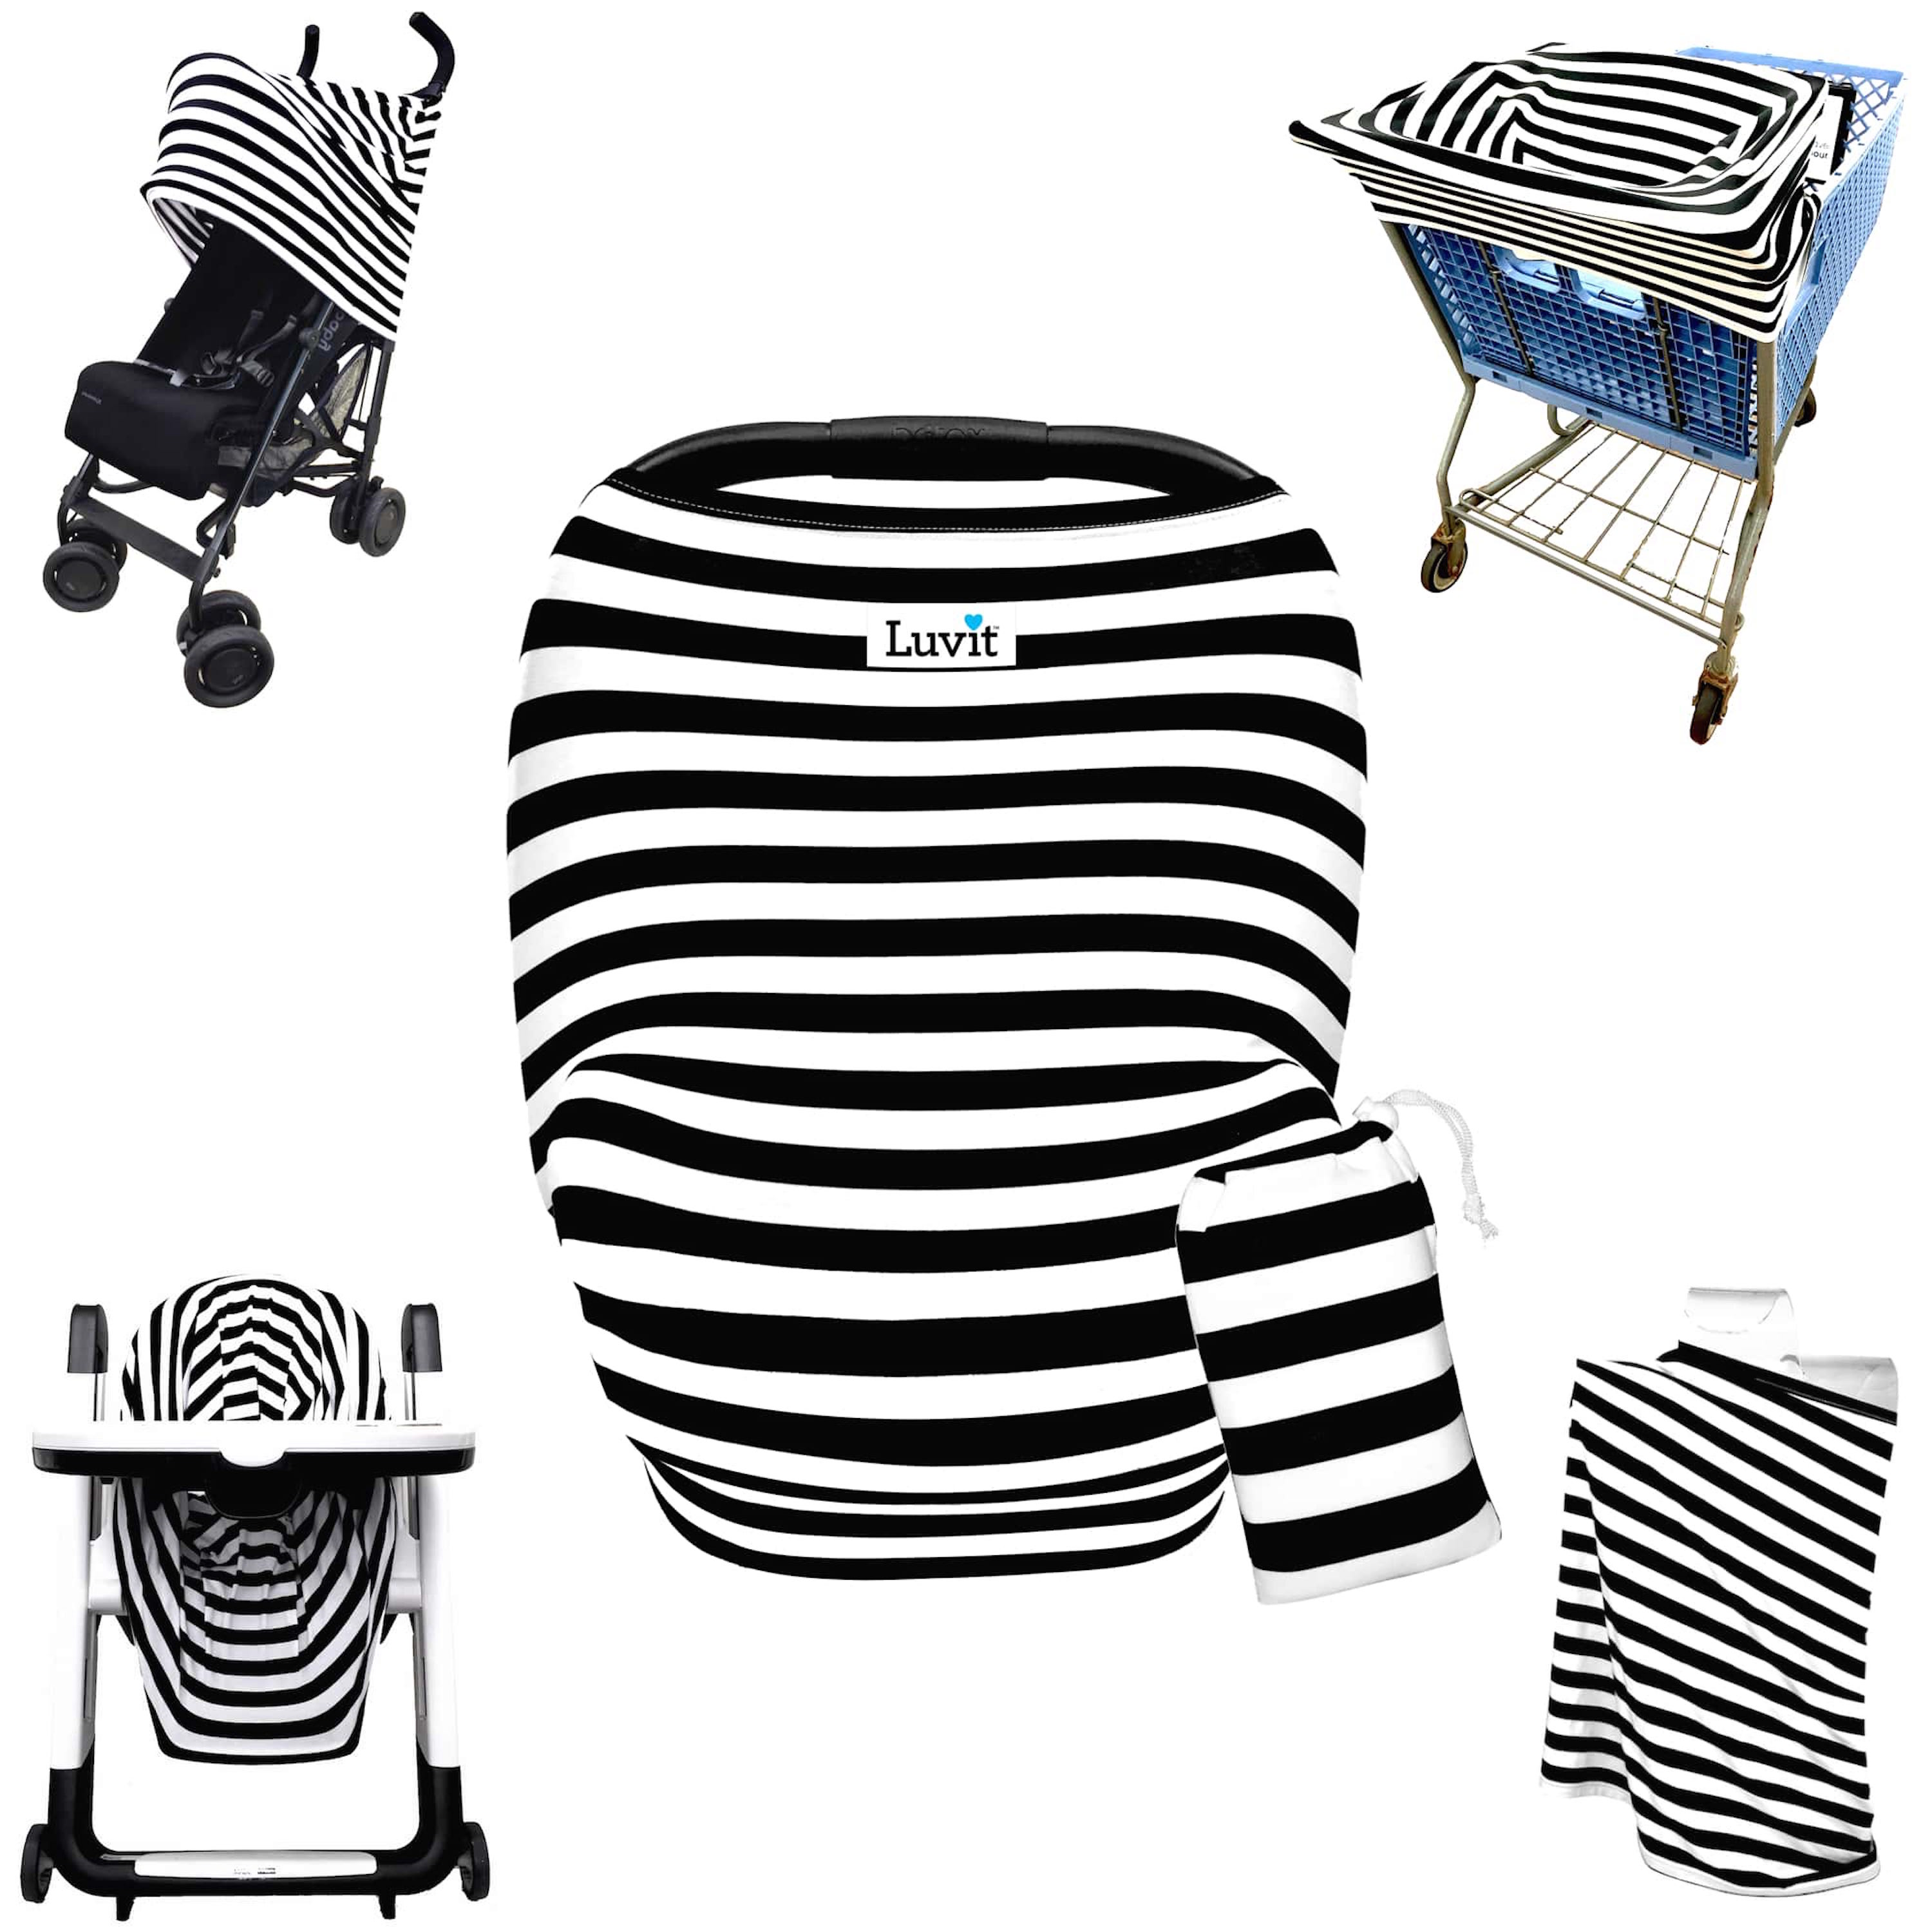 Luvit 5-in-1 Cover for Car Seats, Shopping Carts, High Chairs, Strollers and Nursing Moms in Black & White Stripes